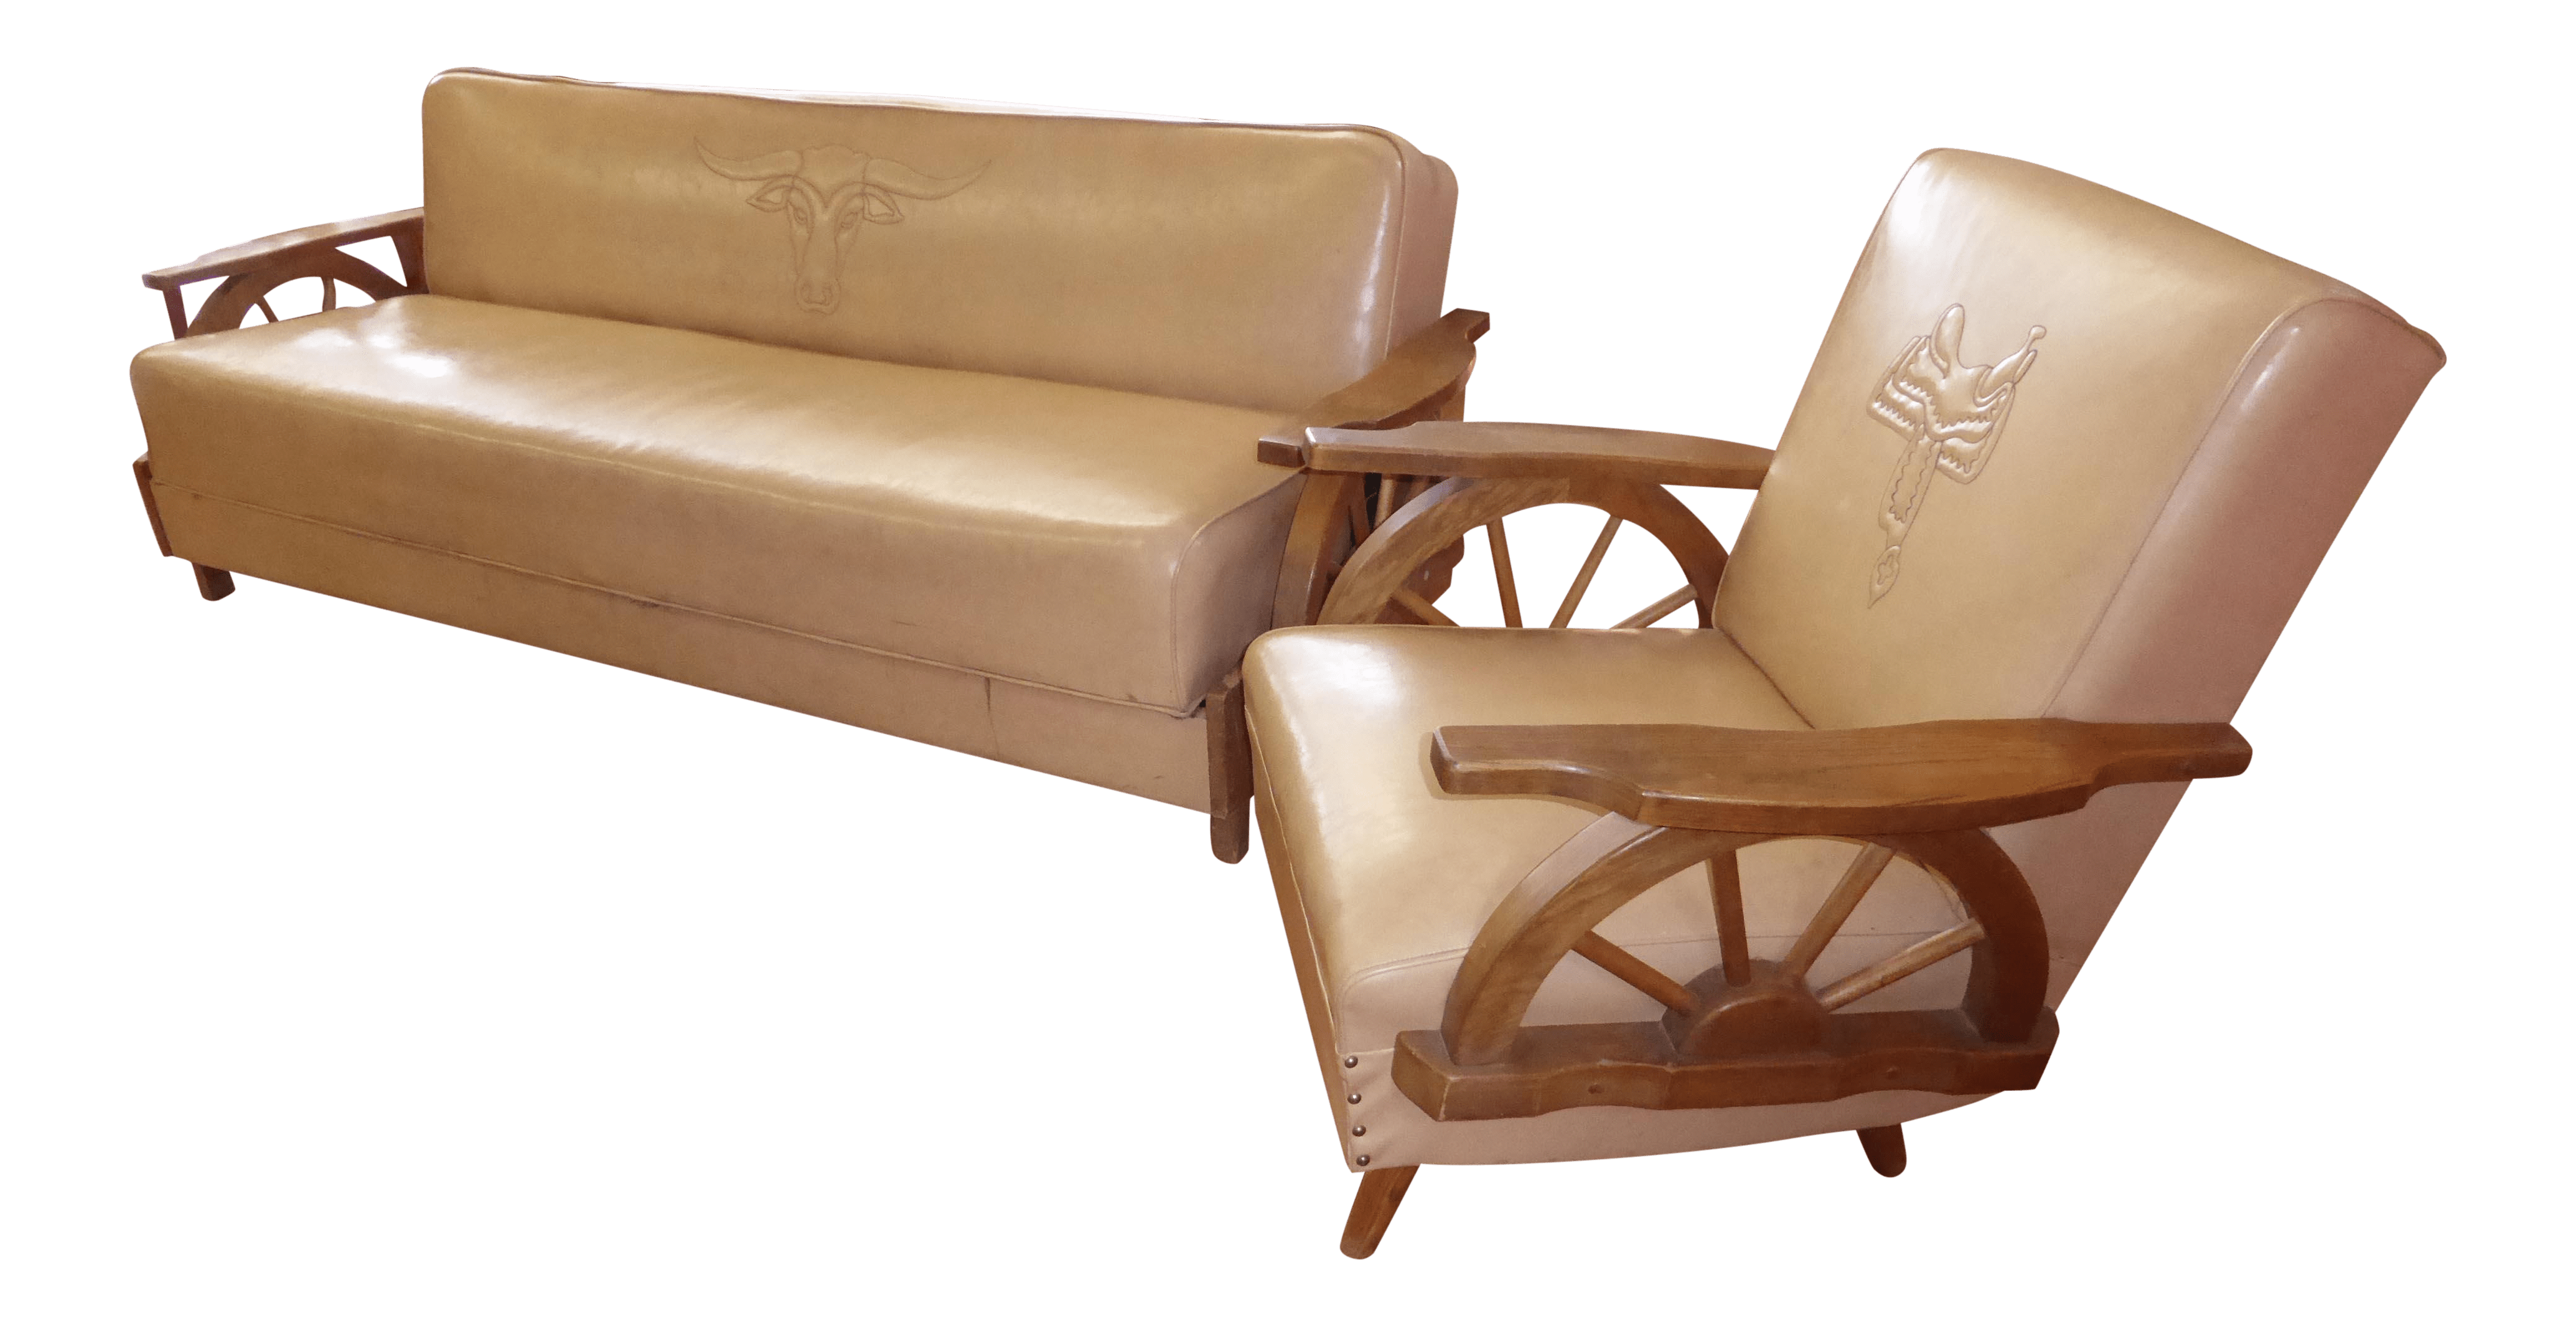 sofa rocking chair plastic covers for bed bugs vintage western cowboy wagon wheel sleeper a pair chairish